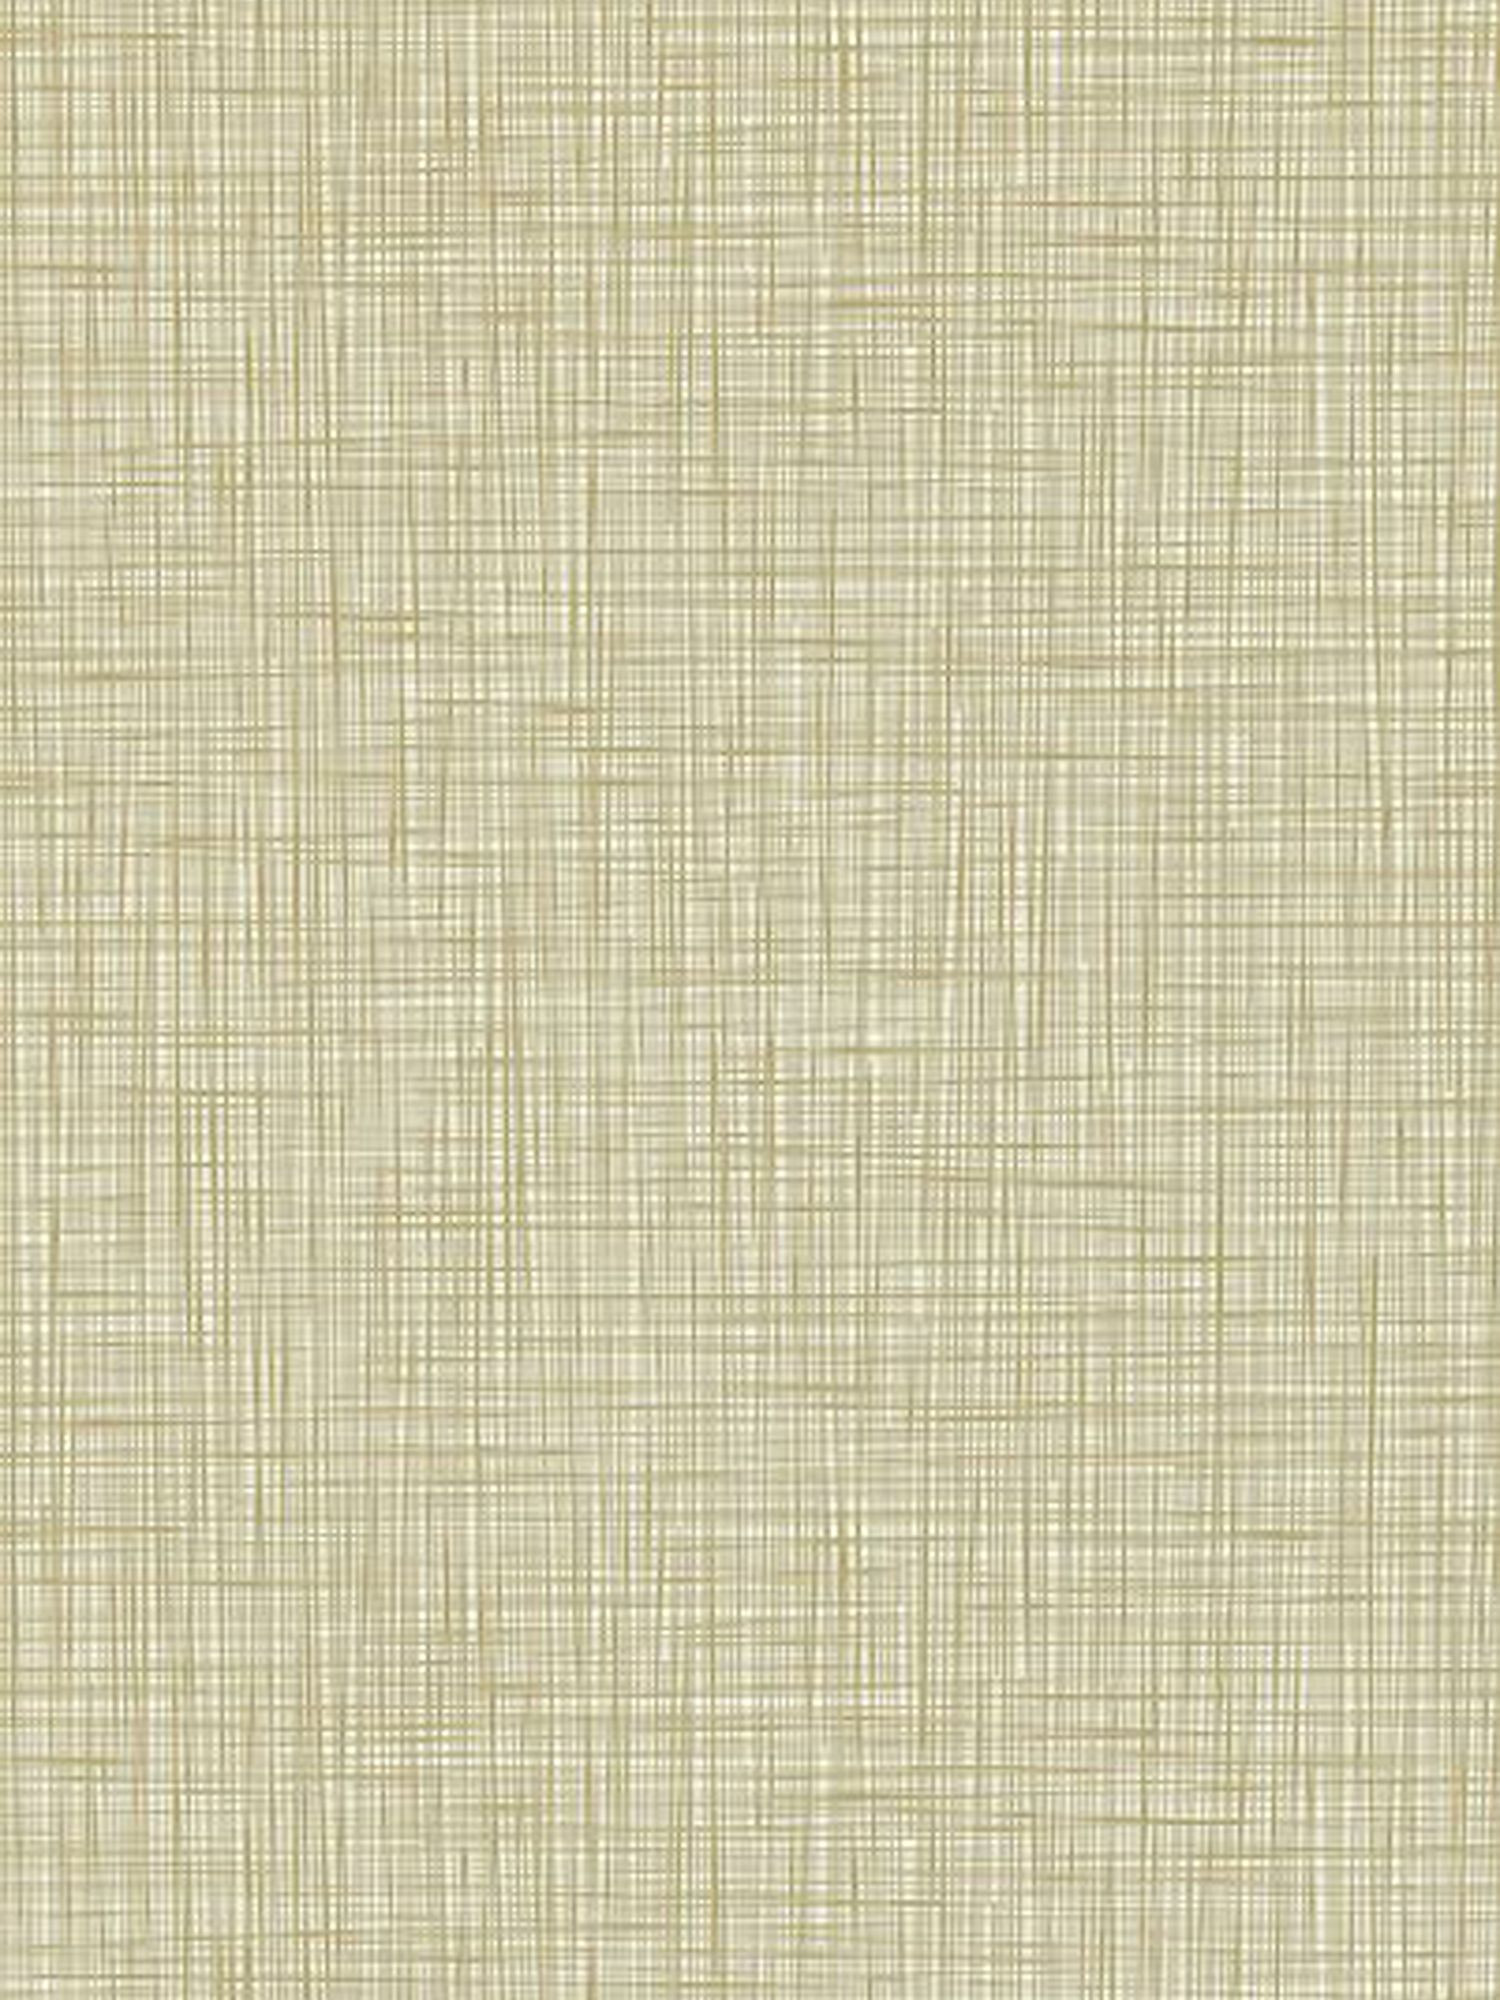 Orla Kiely House for Harlequin Scribble Wallpaper Retro